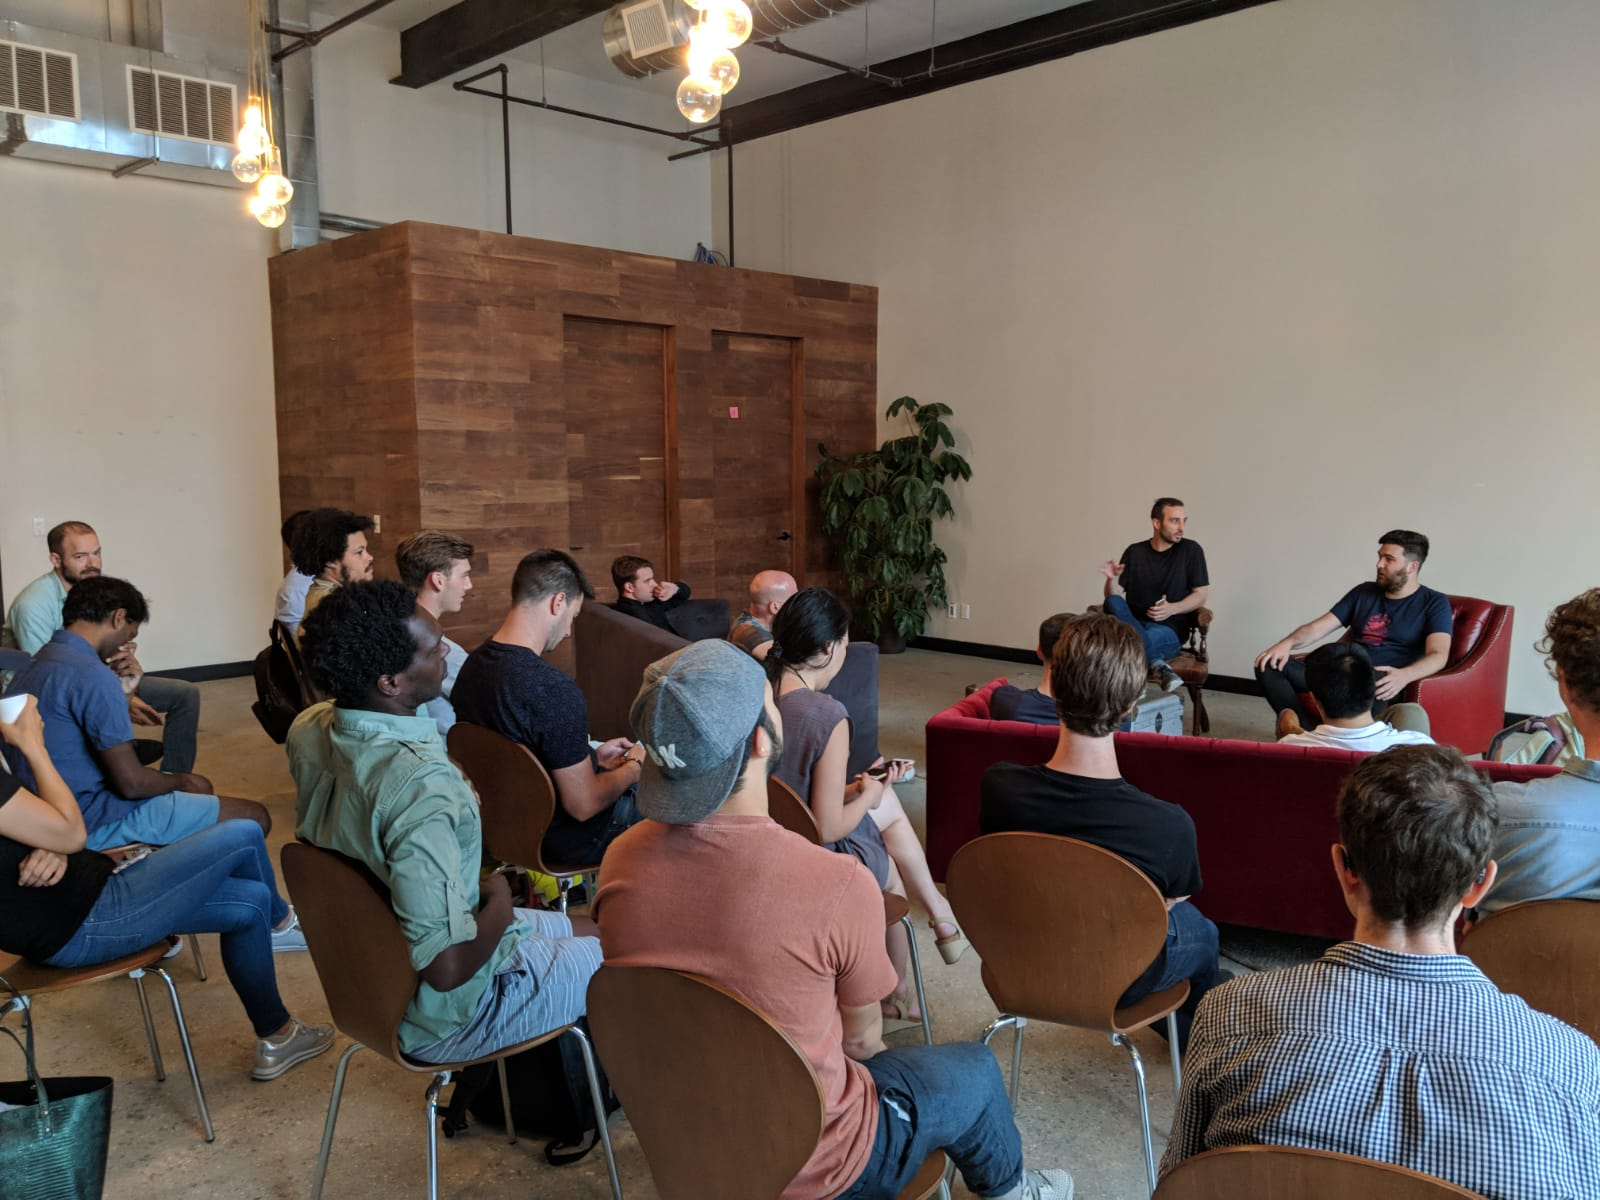 FOAM.space comes to do a presentation and meetup